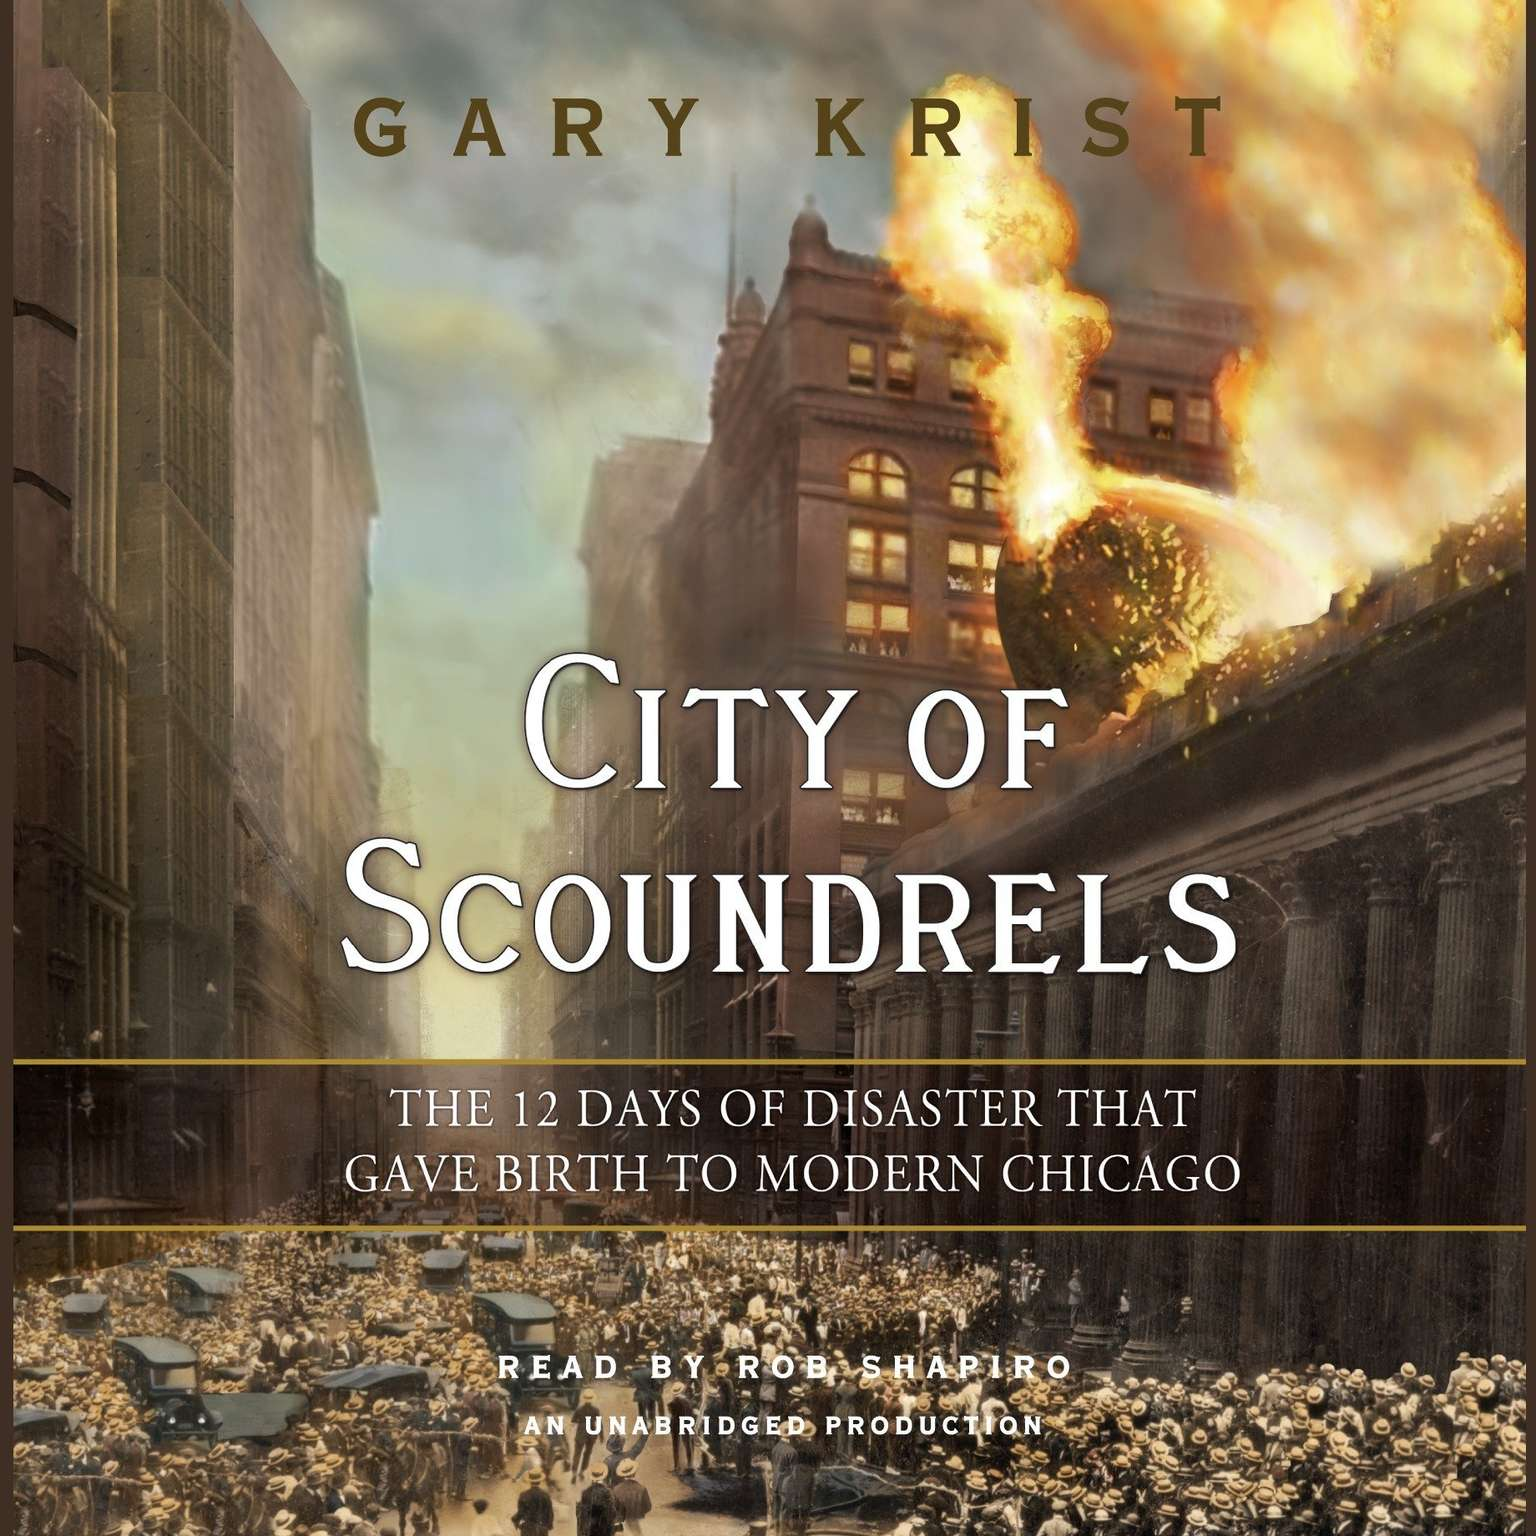 Printable City of Scoundrels: The 12 Days of Disaster That Gave Birth to Modern Chicago Audiobook Cover Art